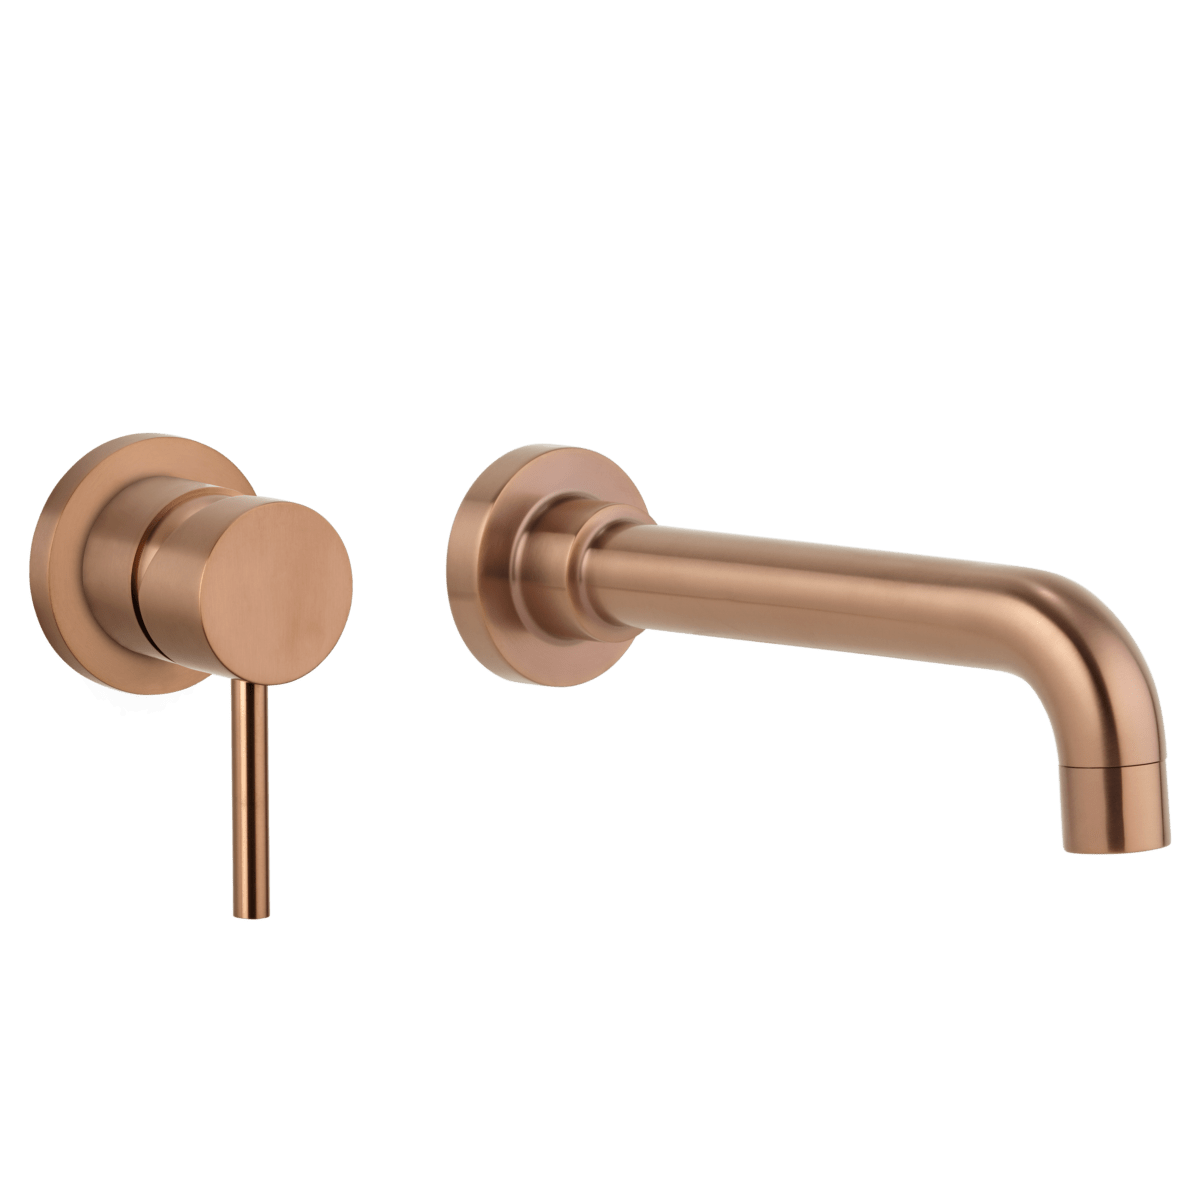 Traditional Taps Australia Wall Mounted Taps Wall Mixers Buy Online Save Best Prices